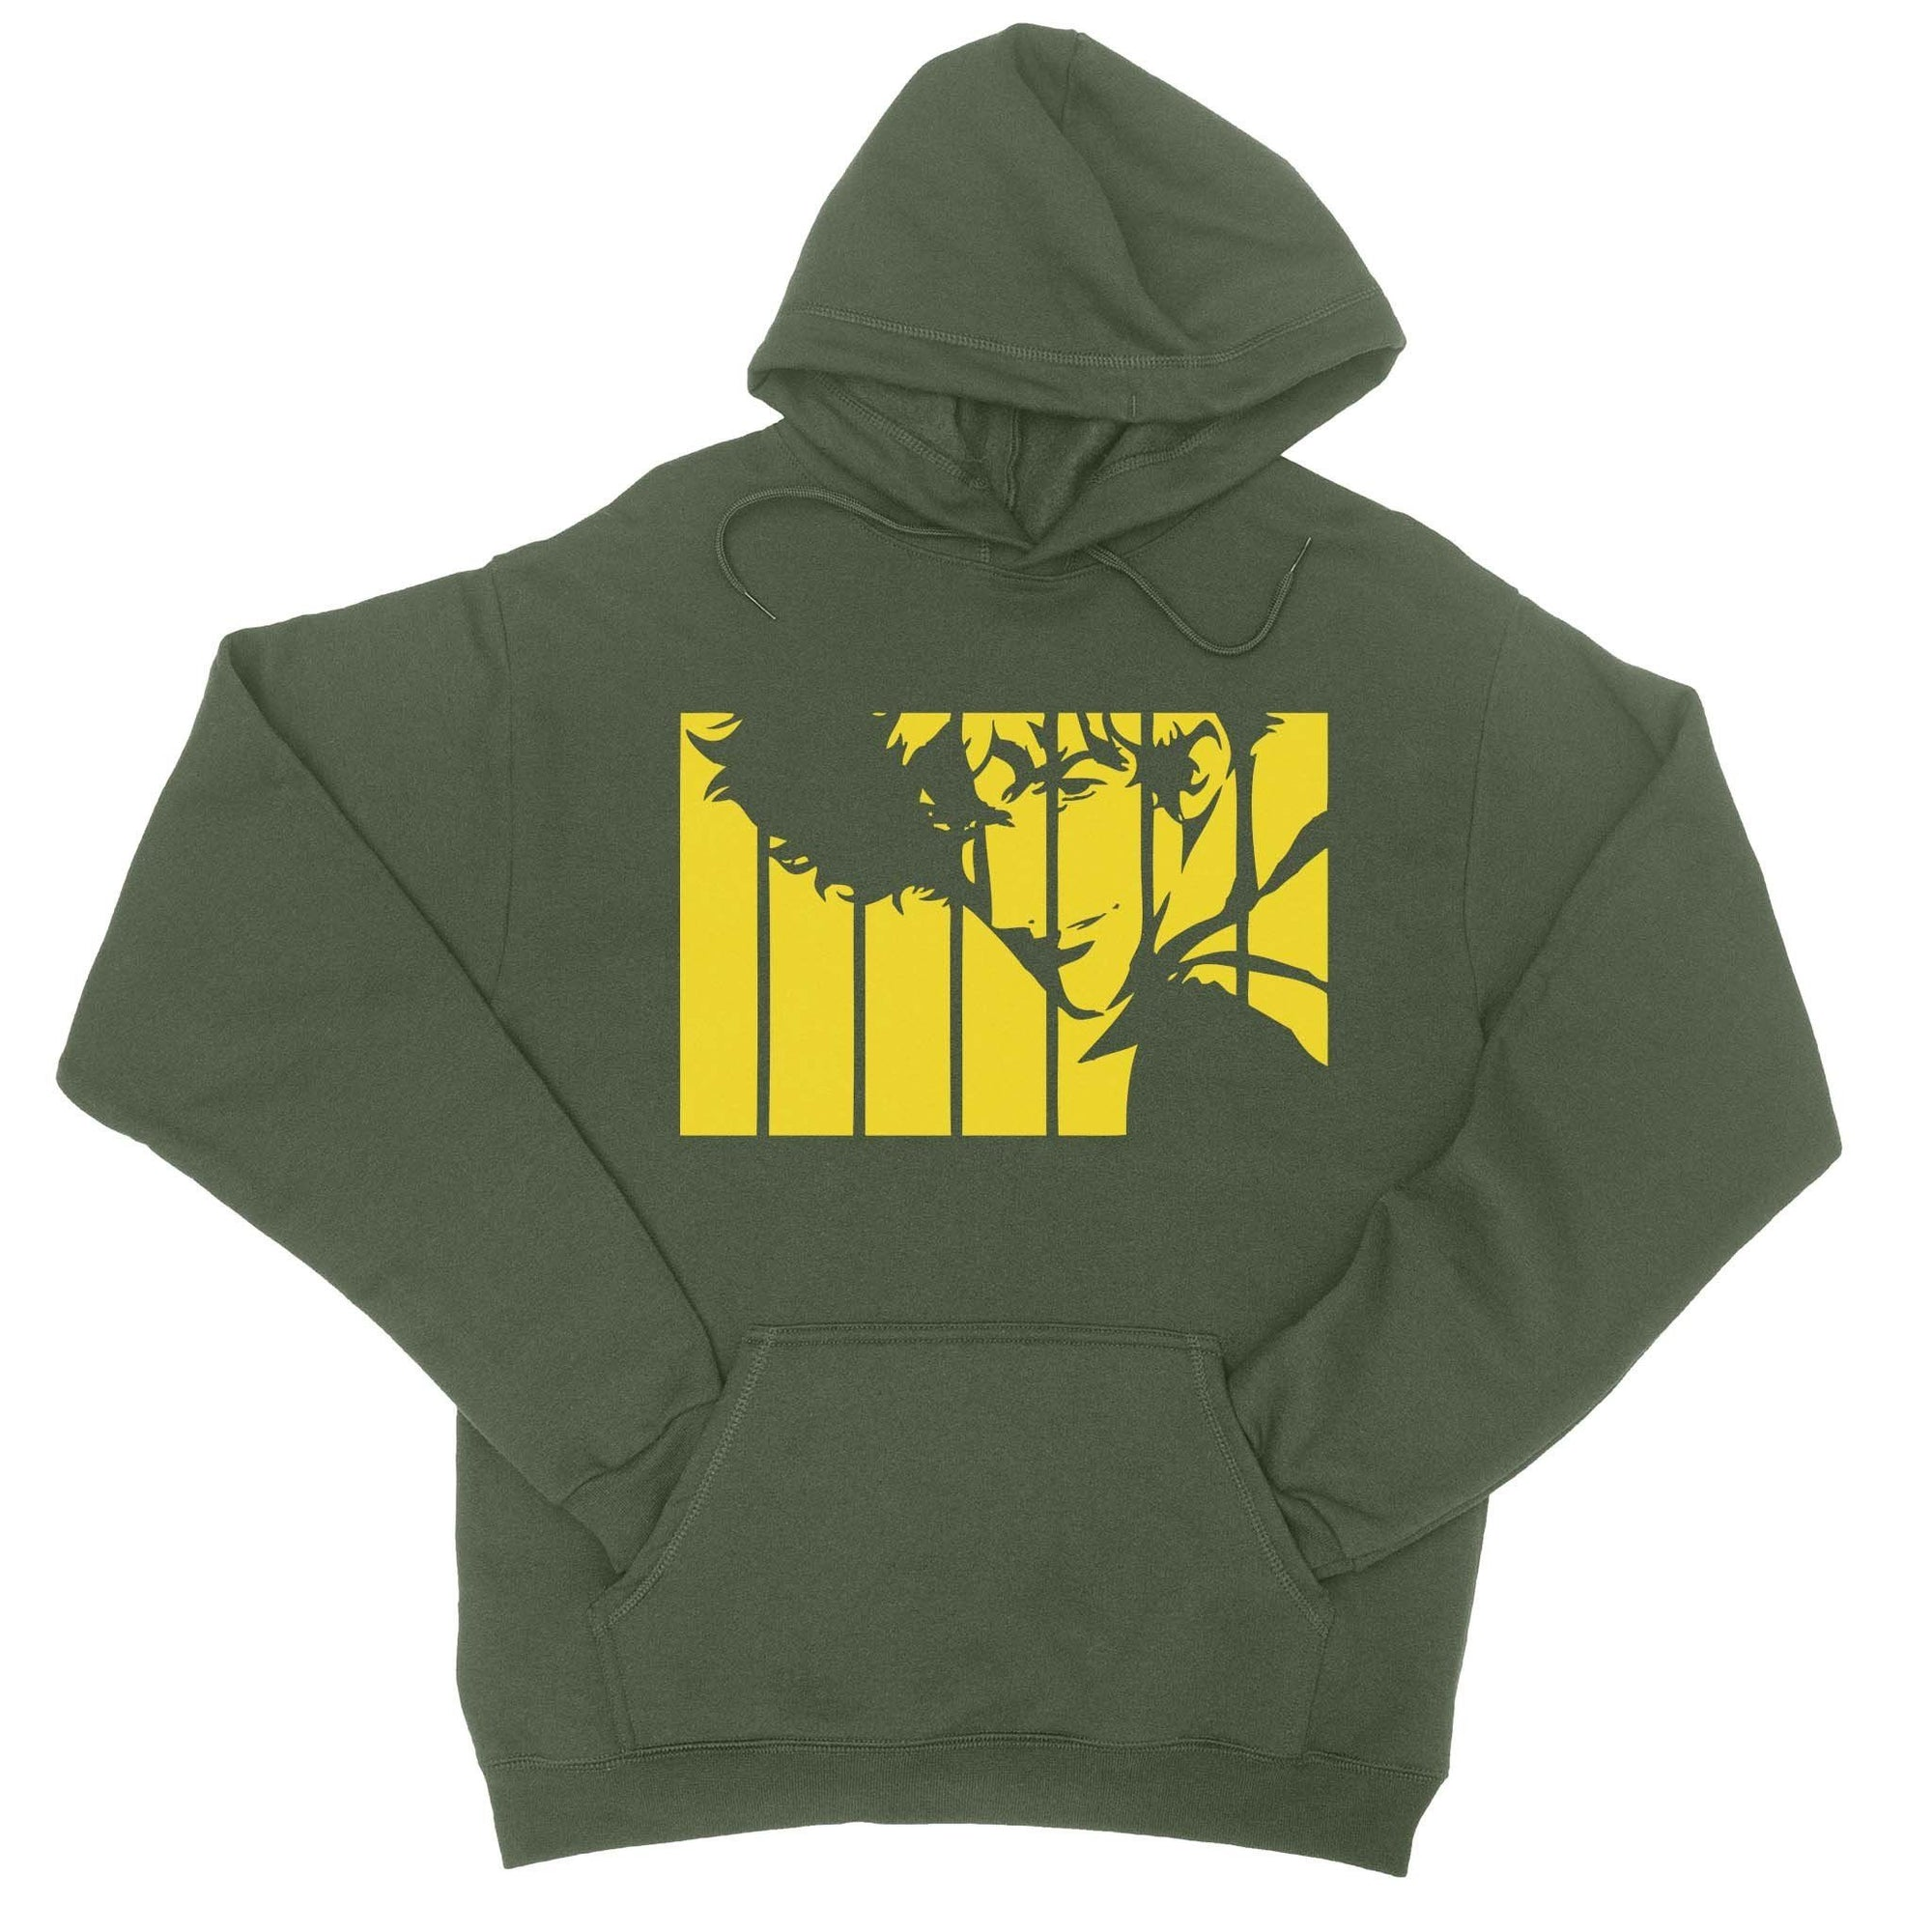 Space Cowboy Hoodie-Hoodies-Shirtasaurus-S-Military Green-Shirtasaurus